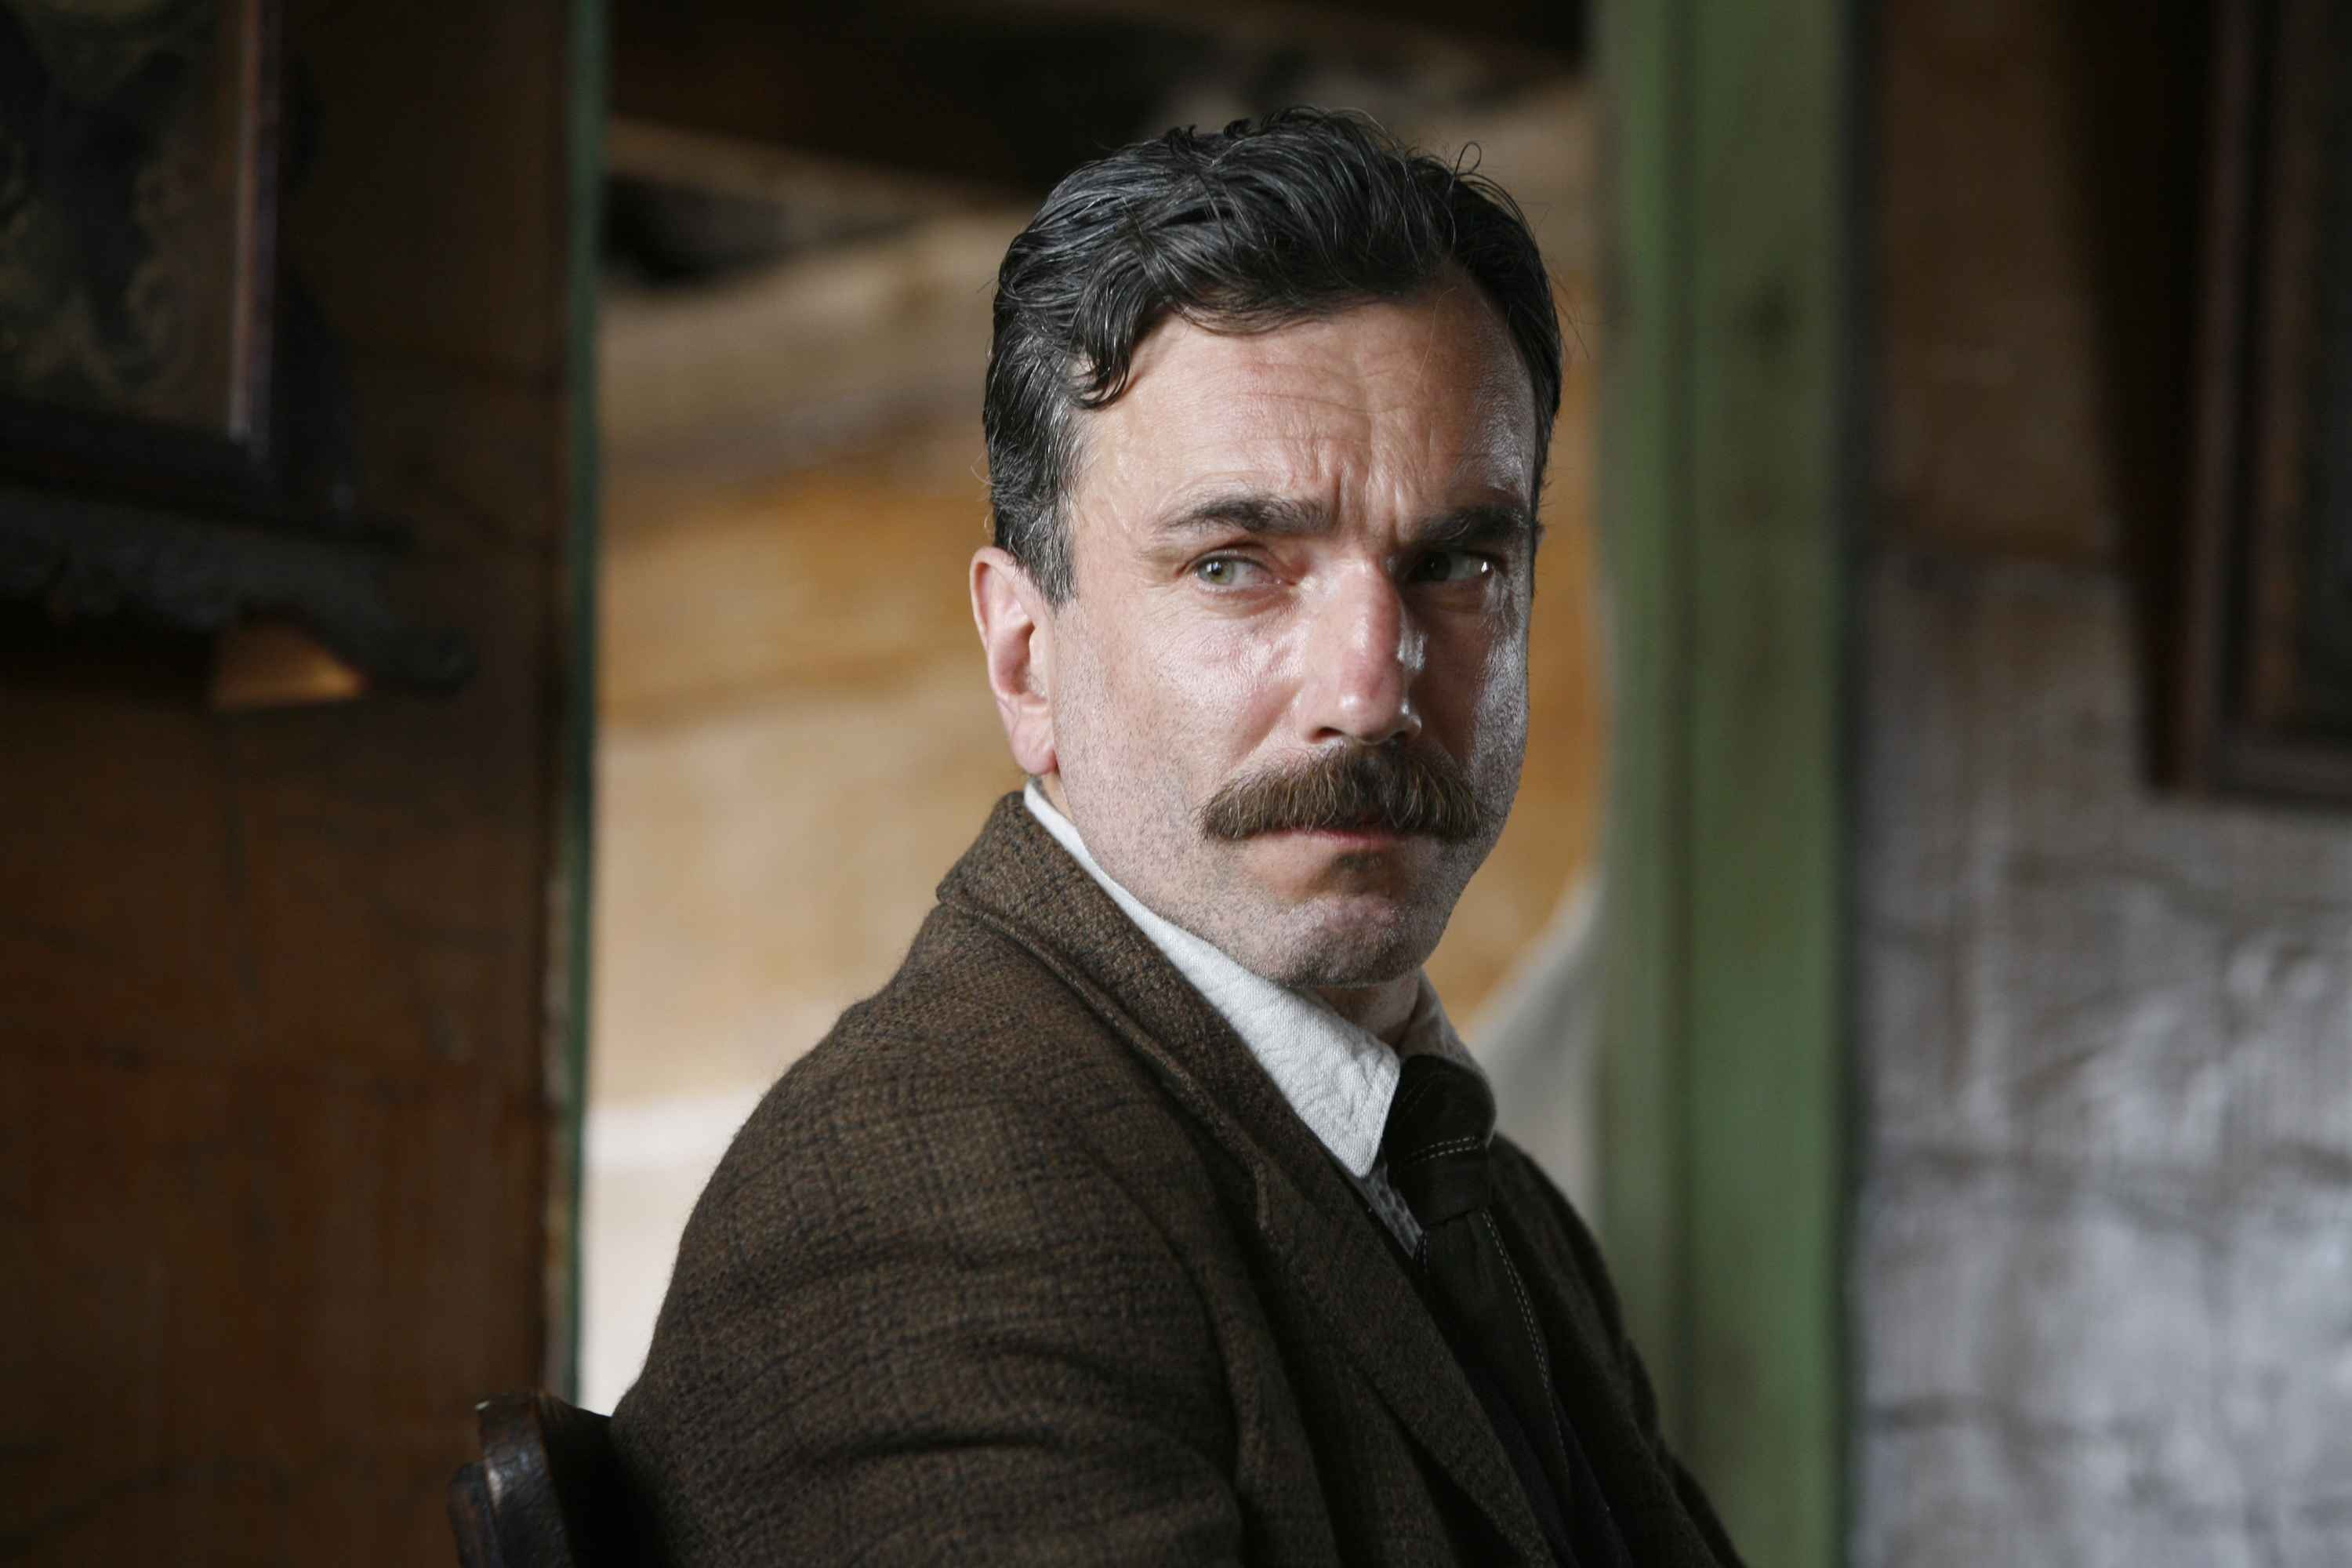 daniel day lewis actor widescreen hd wallpaper 77